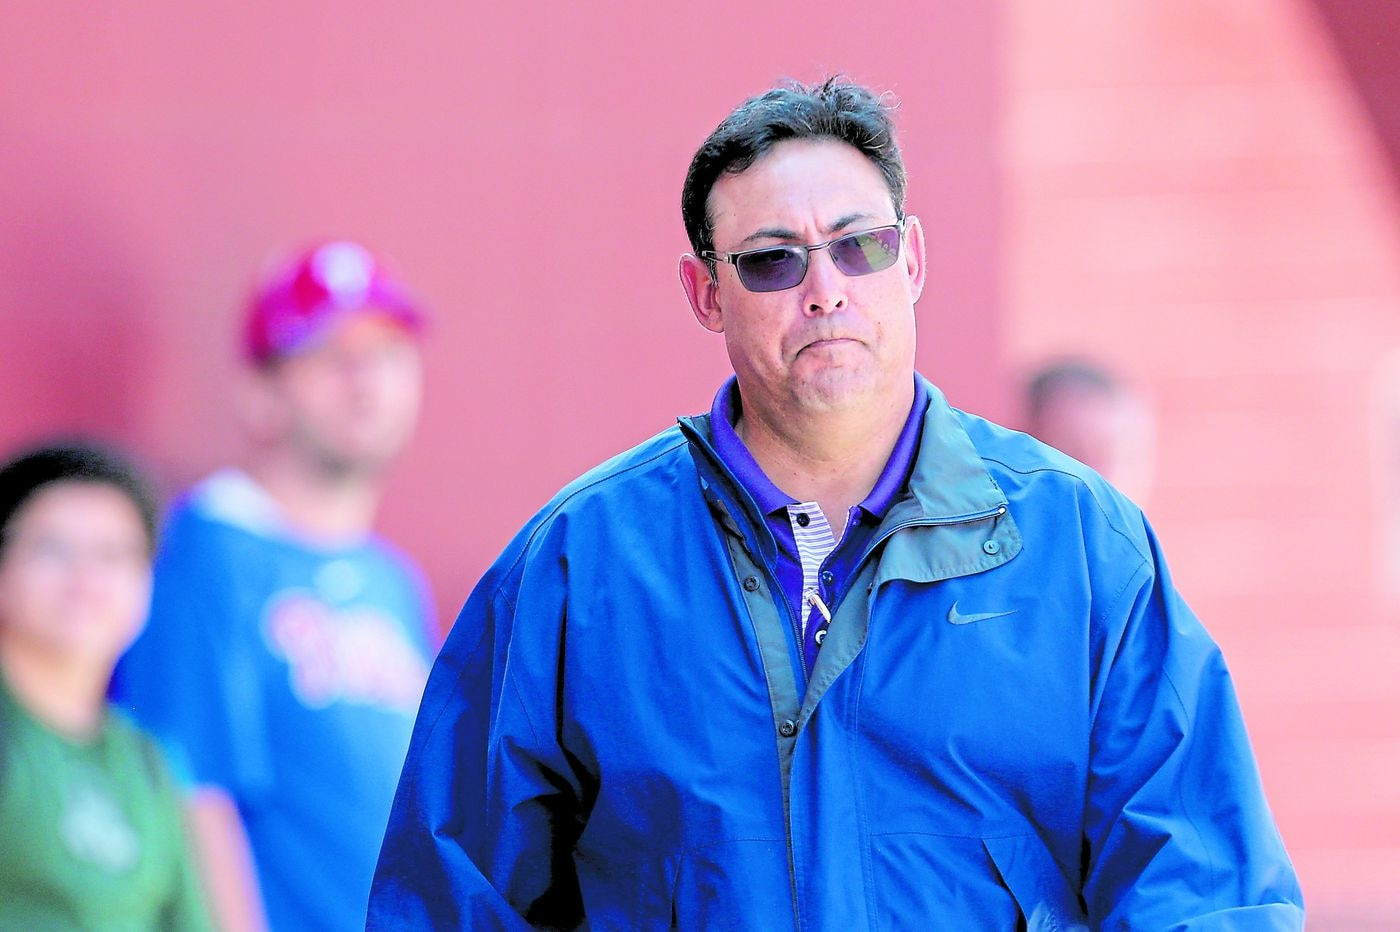 Phillies general manager search crawls while former GM Ruben Amaro Jr. interviews with Angels